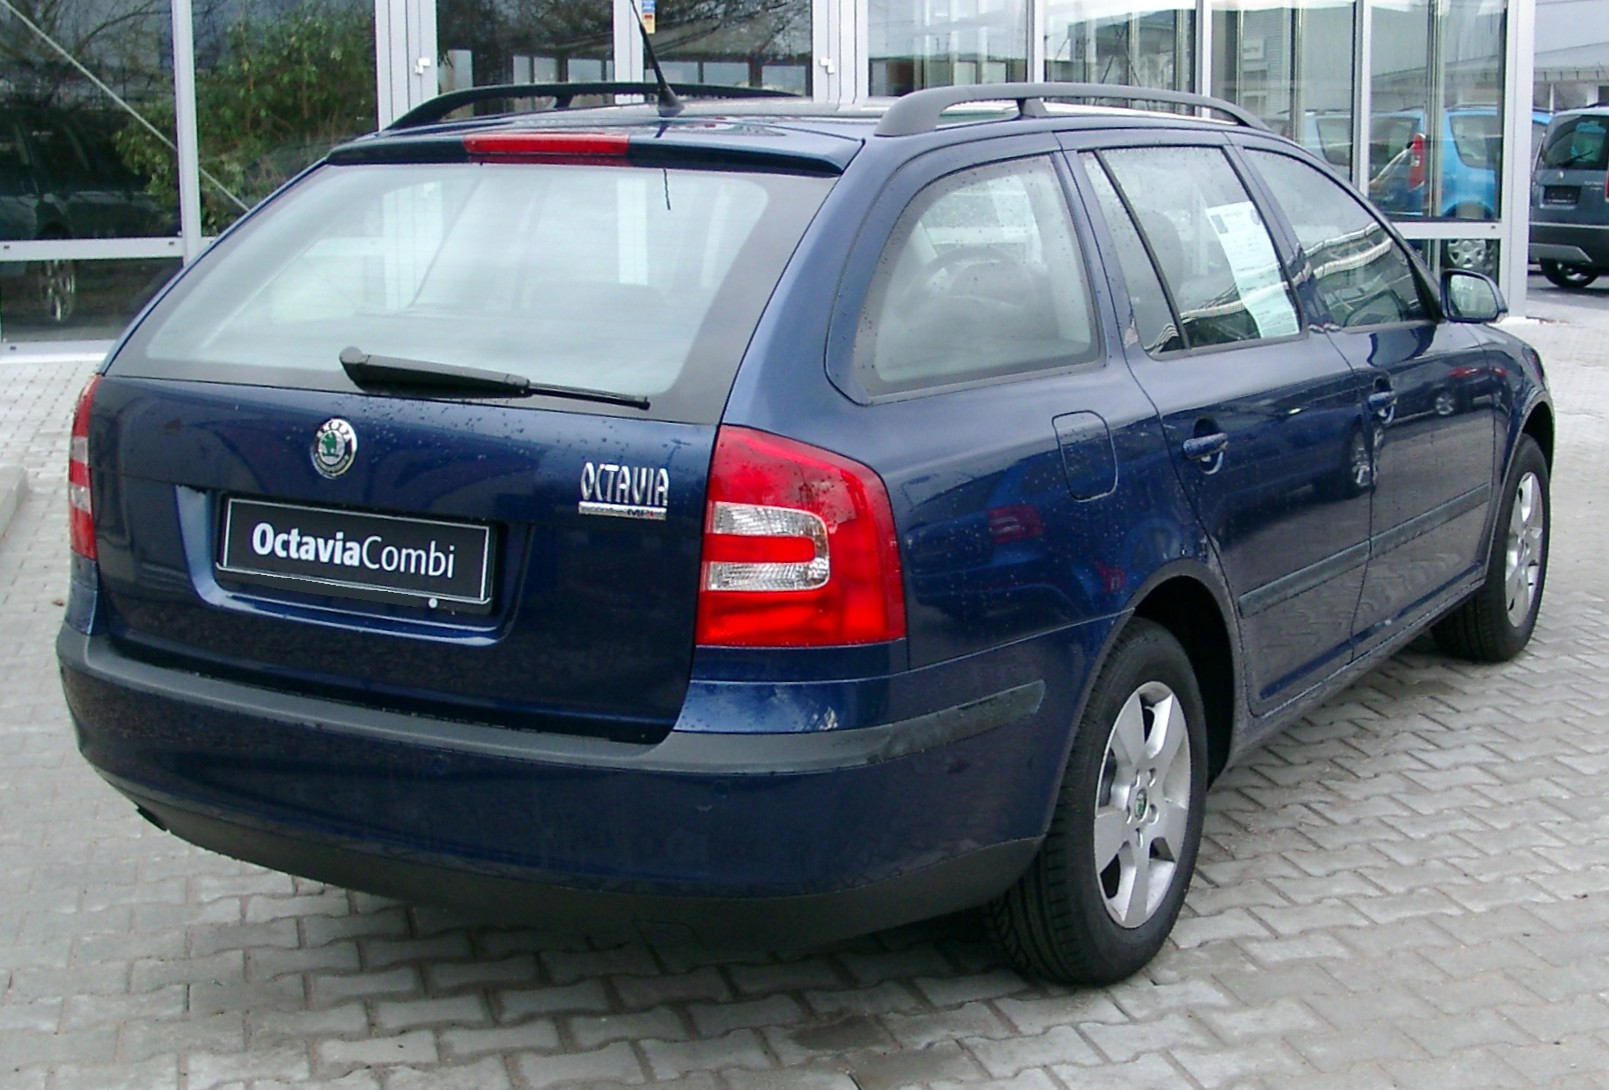 rank skoda car pictures skoda octavia combi. Black Bedroom Furniture Sets. Home Design Ideas